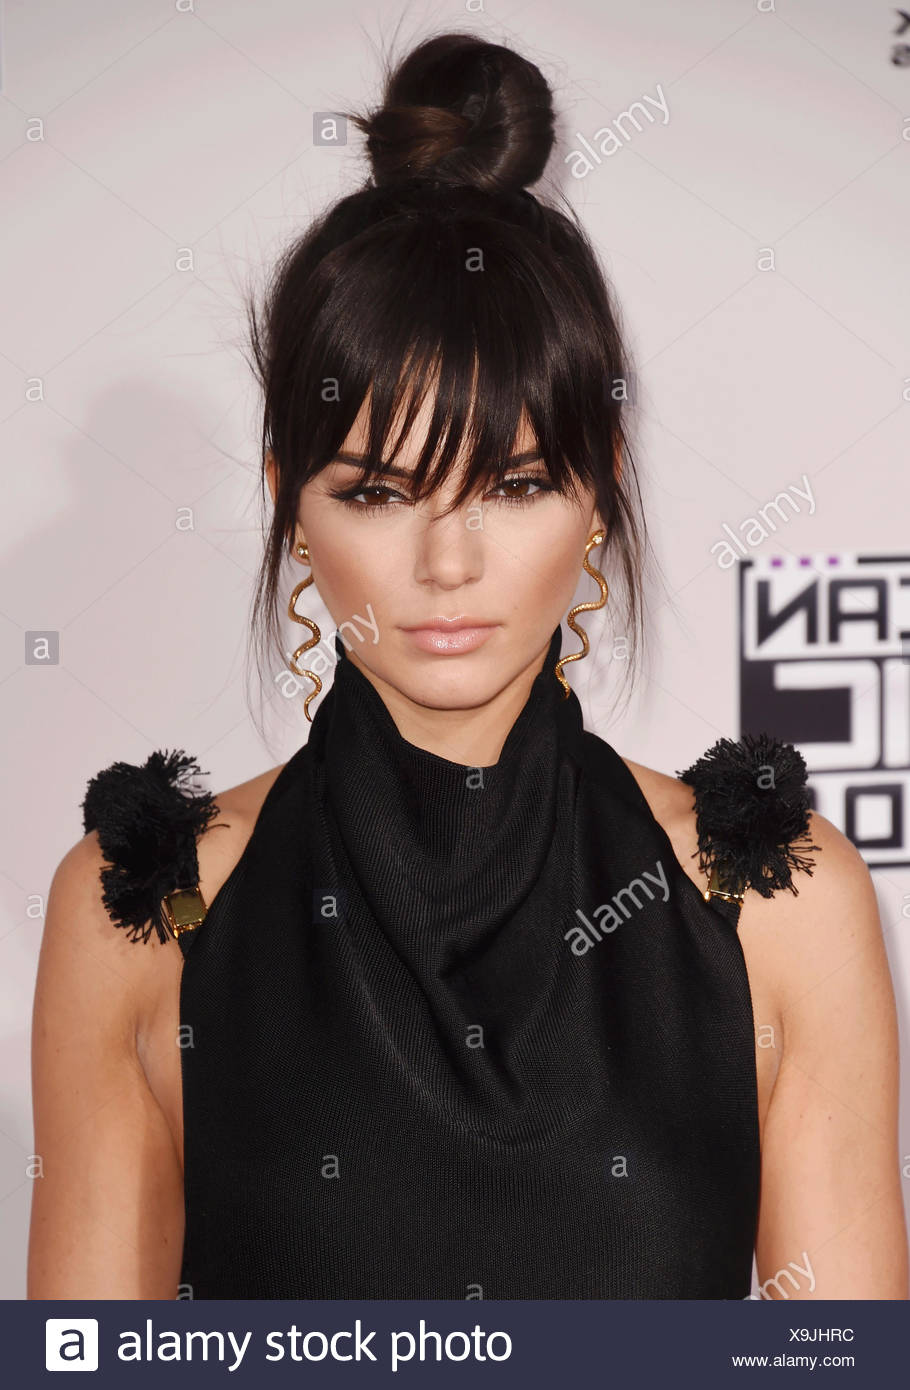 TV personality Kendall Jenner arrives at the 2015 American Music Awards at Microsoft Theater on November 22, 2015 in Los Angeles, California., Additional-Rights-Clearances-NA - Stock Image